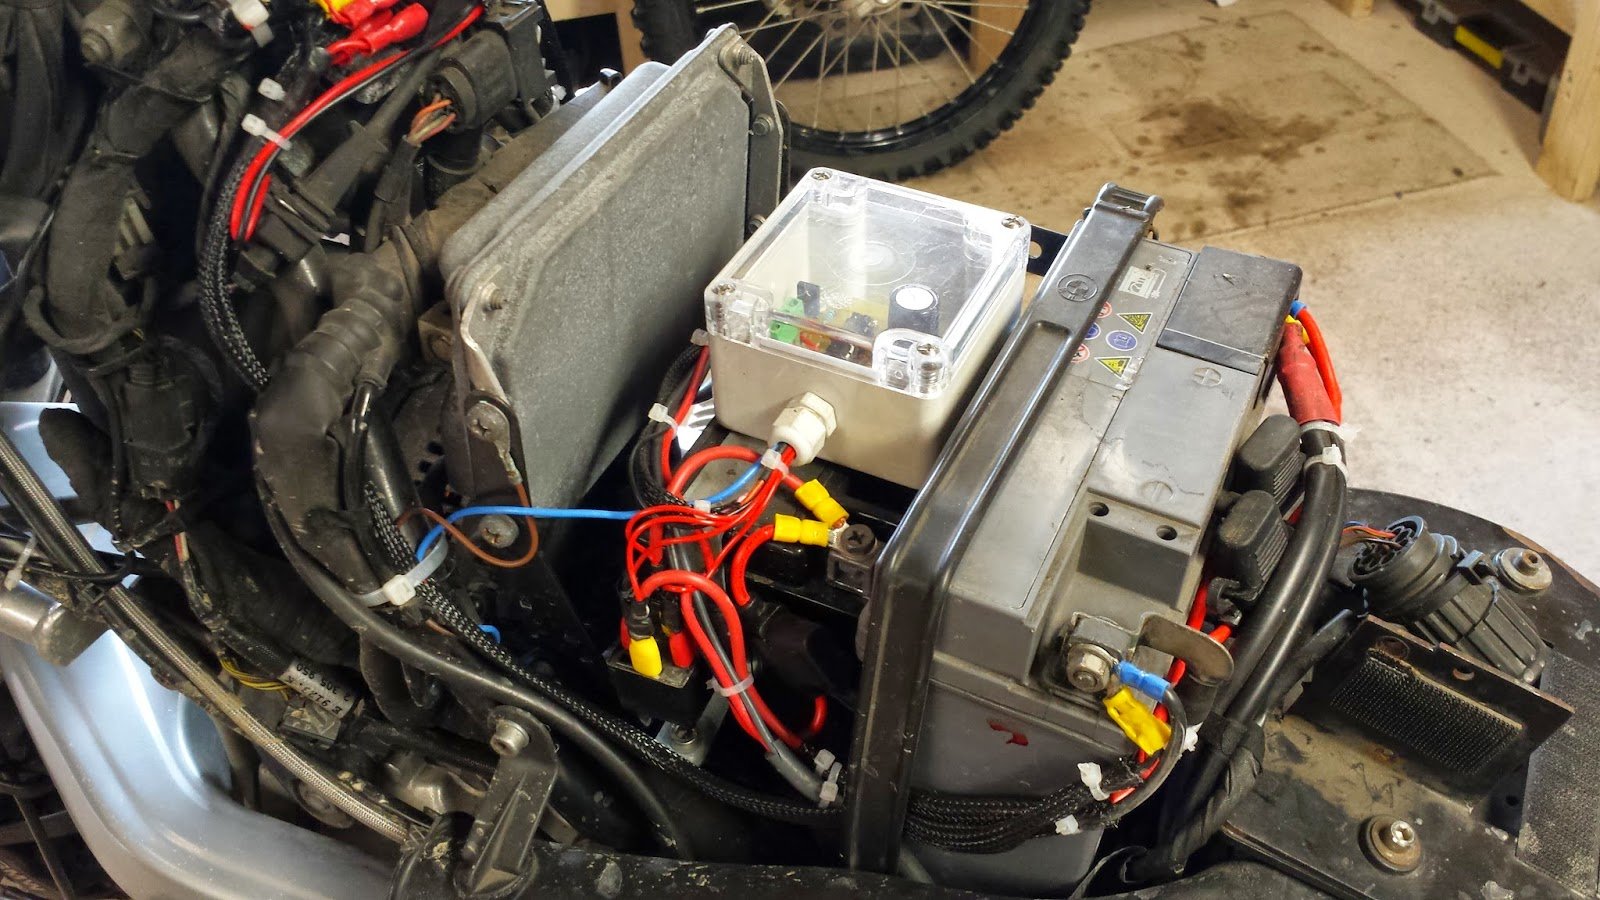 In The Name Of Adventure Bmw R1150gs Auxiliary Battery For Camping Wiring Cigarette Lighter Socket On Motorcycle There Are Two Outputs From Additional One Is A Mounted Side Fuse Cover And Other To